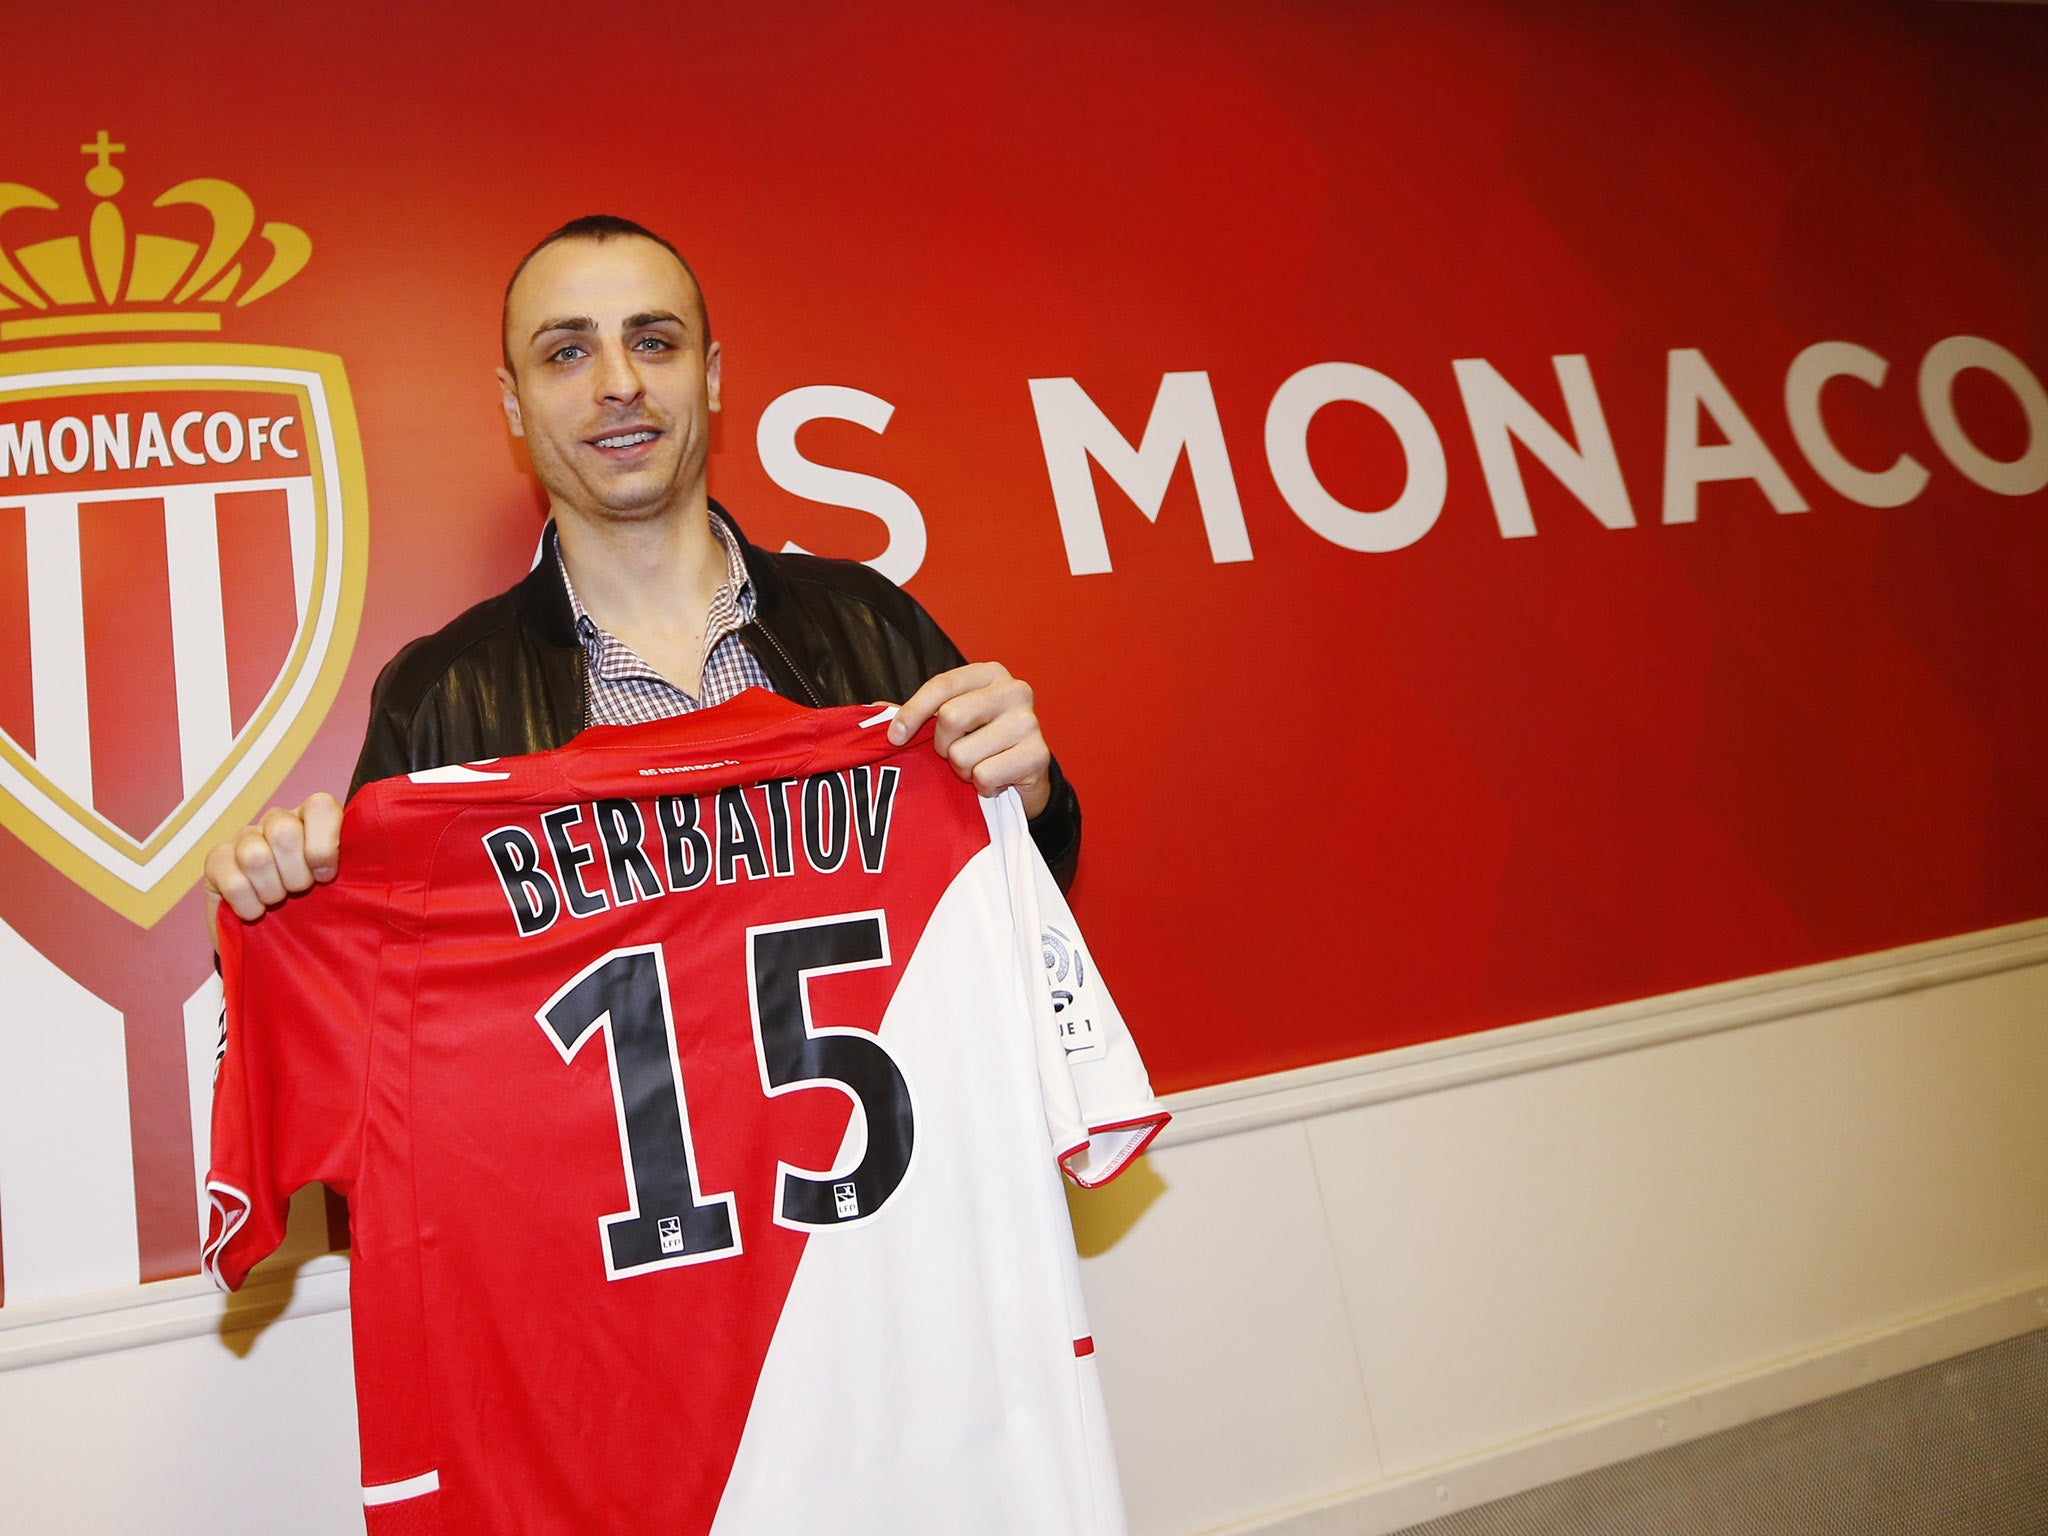 Bournemouth linked with shock move for Dimitar Berbatov as they